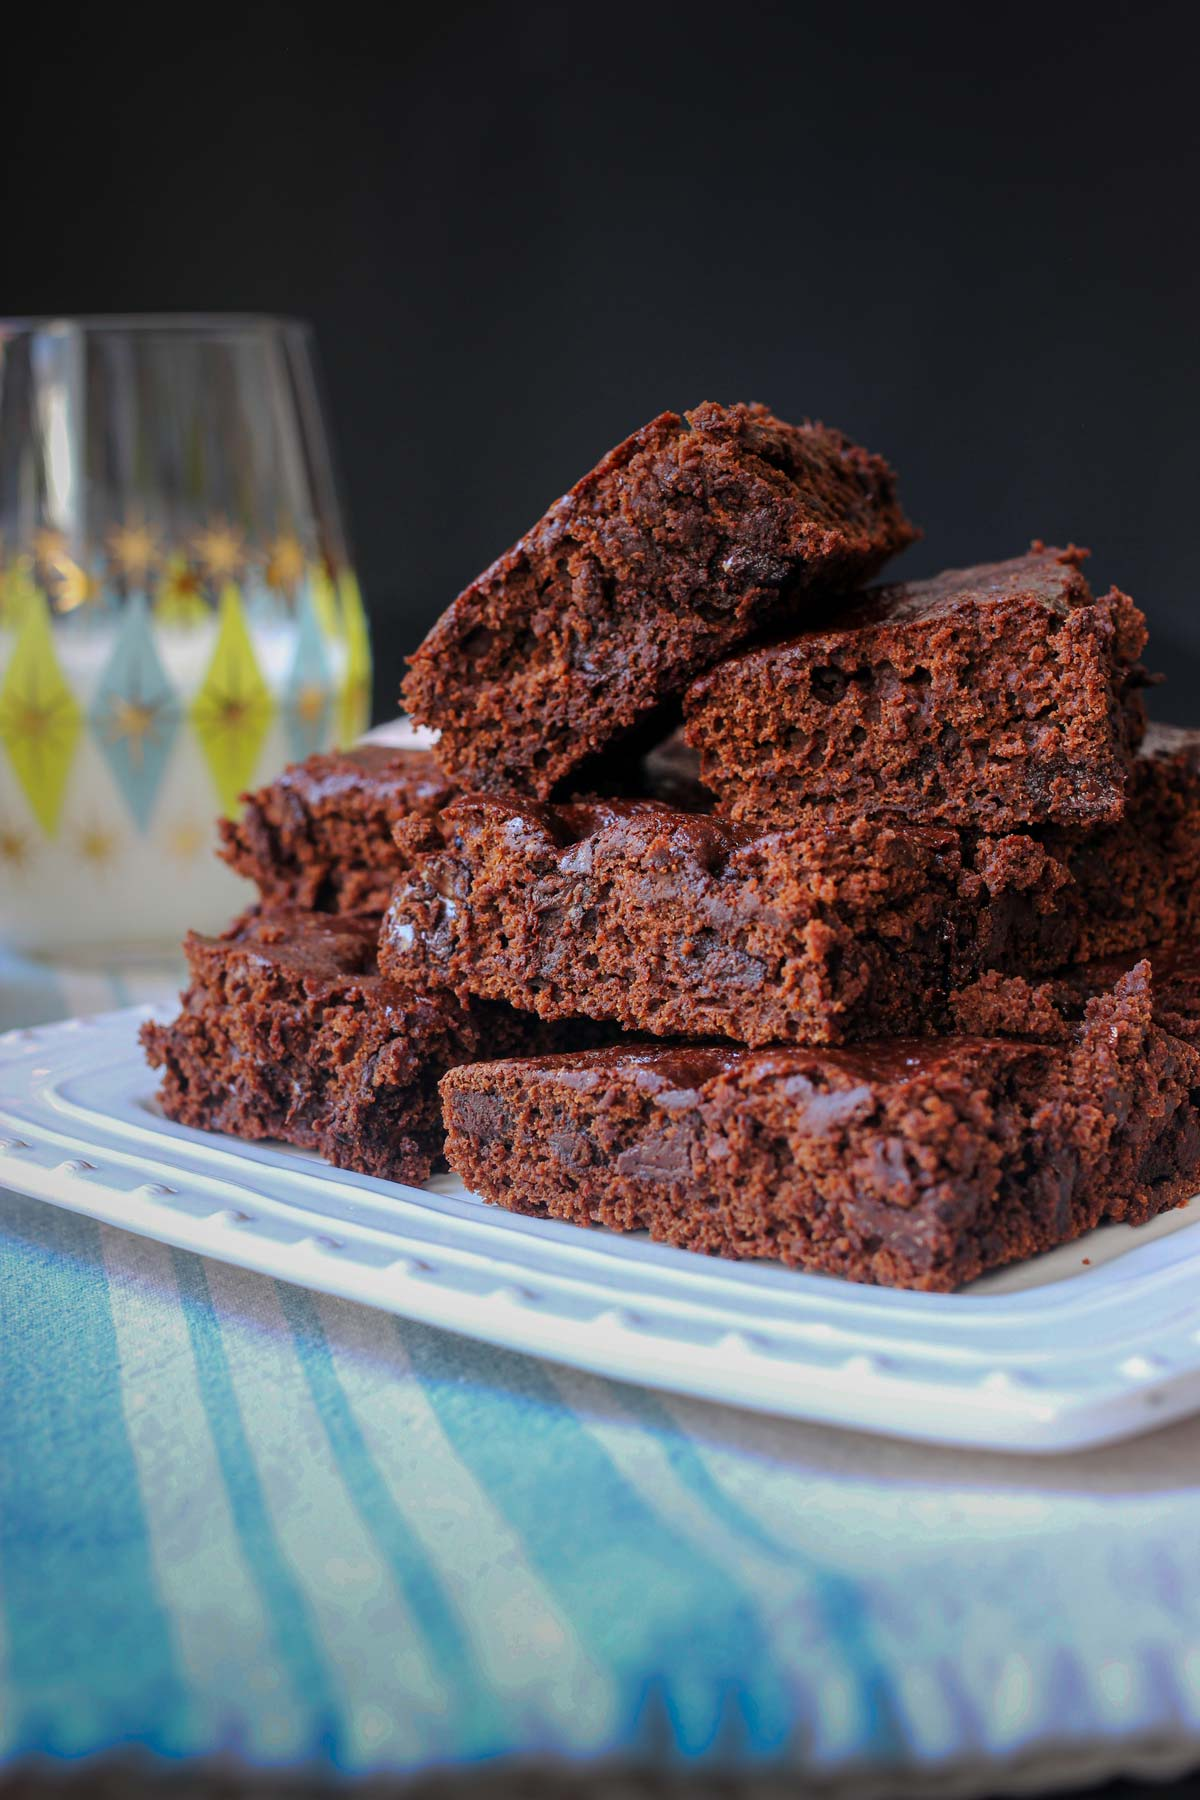 brownies stacked on white tray on blue napkin next to blue and green glass of milk.